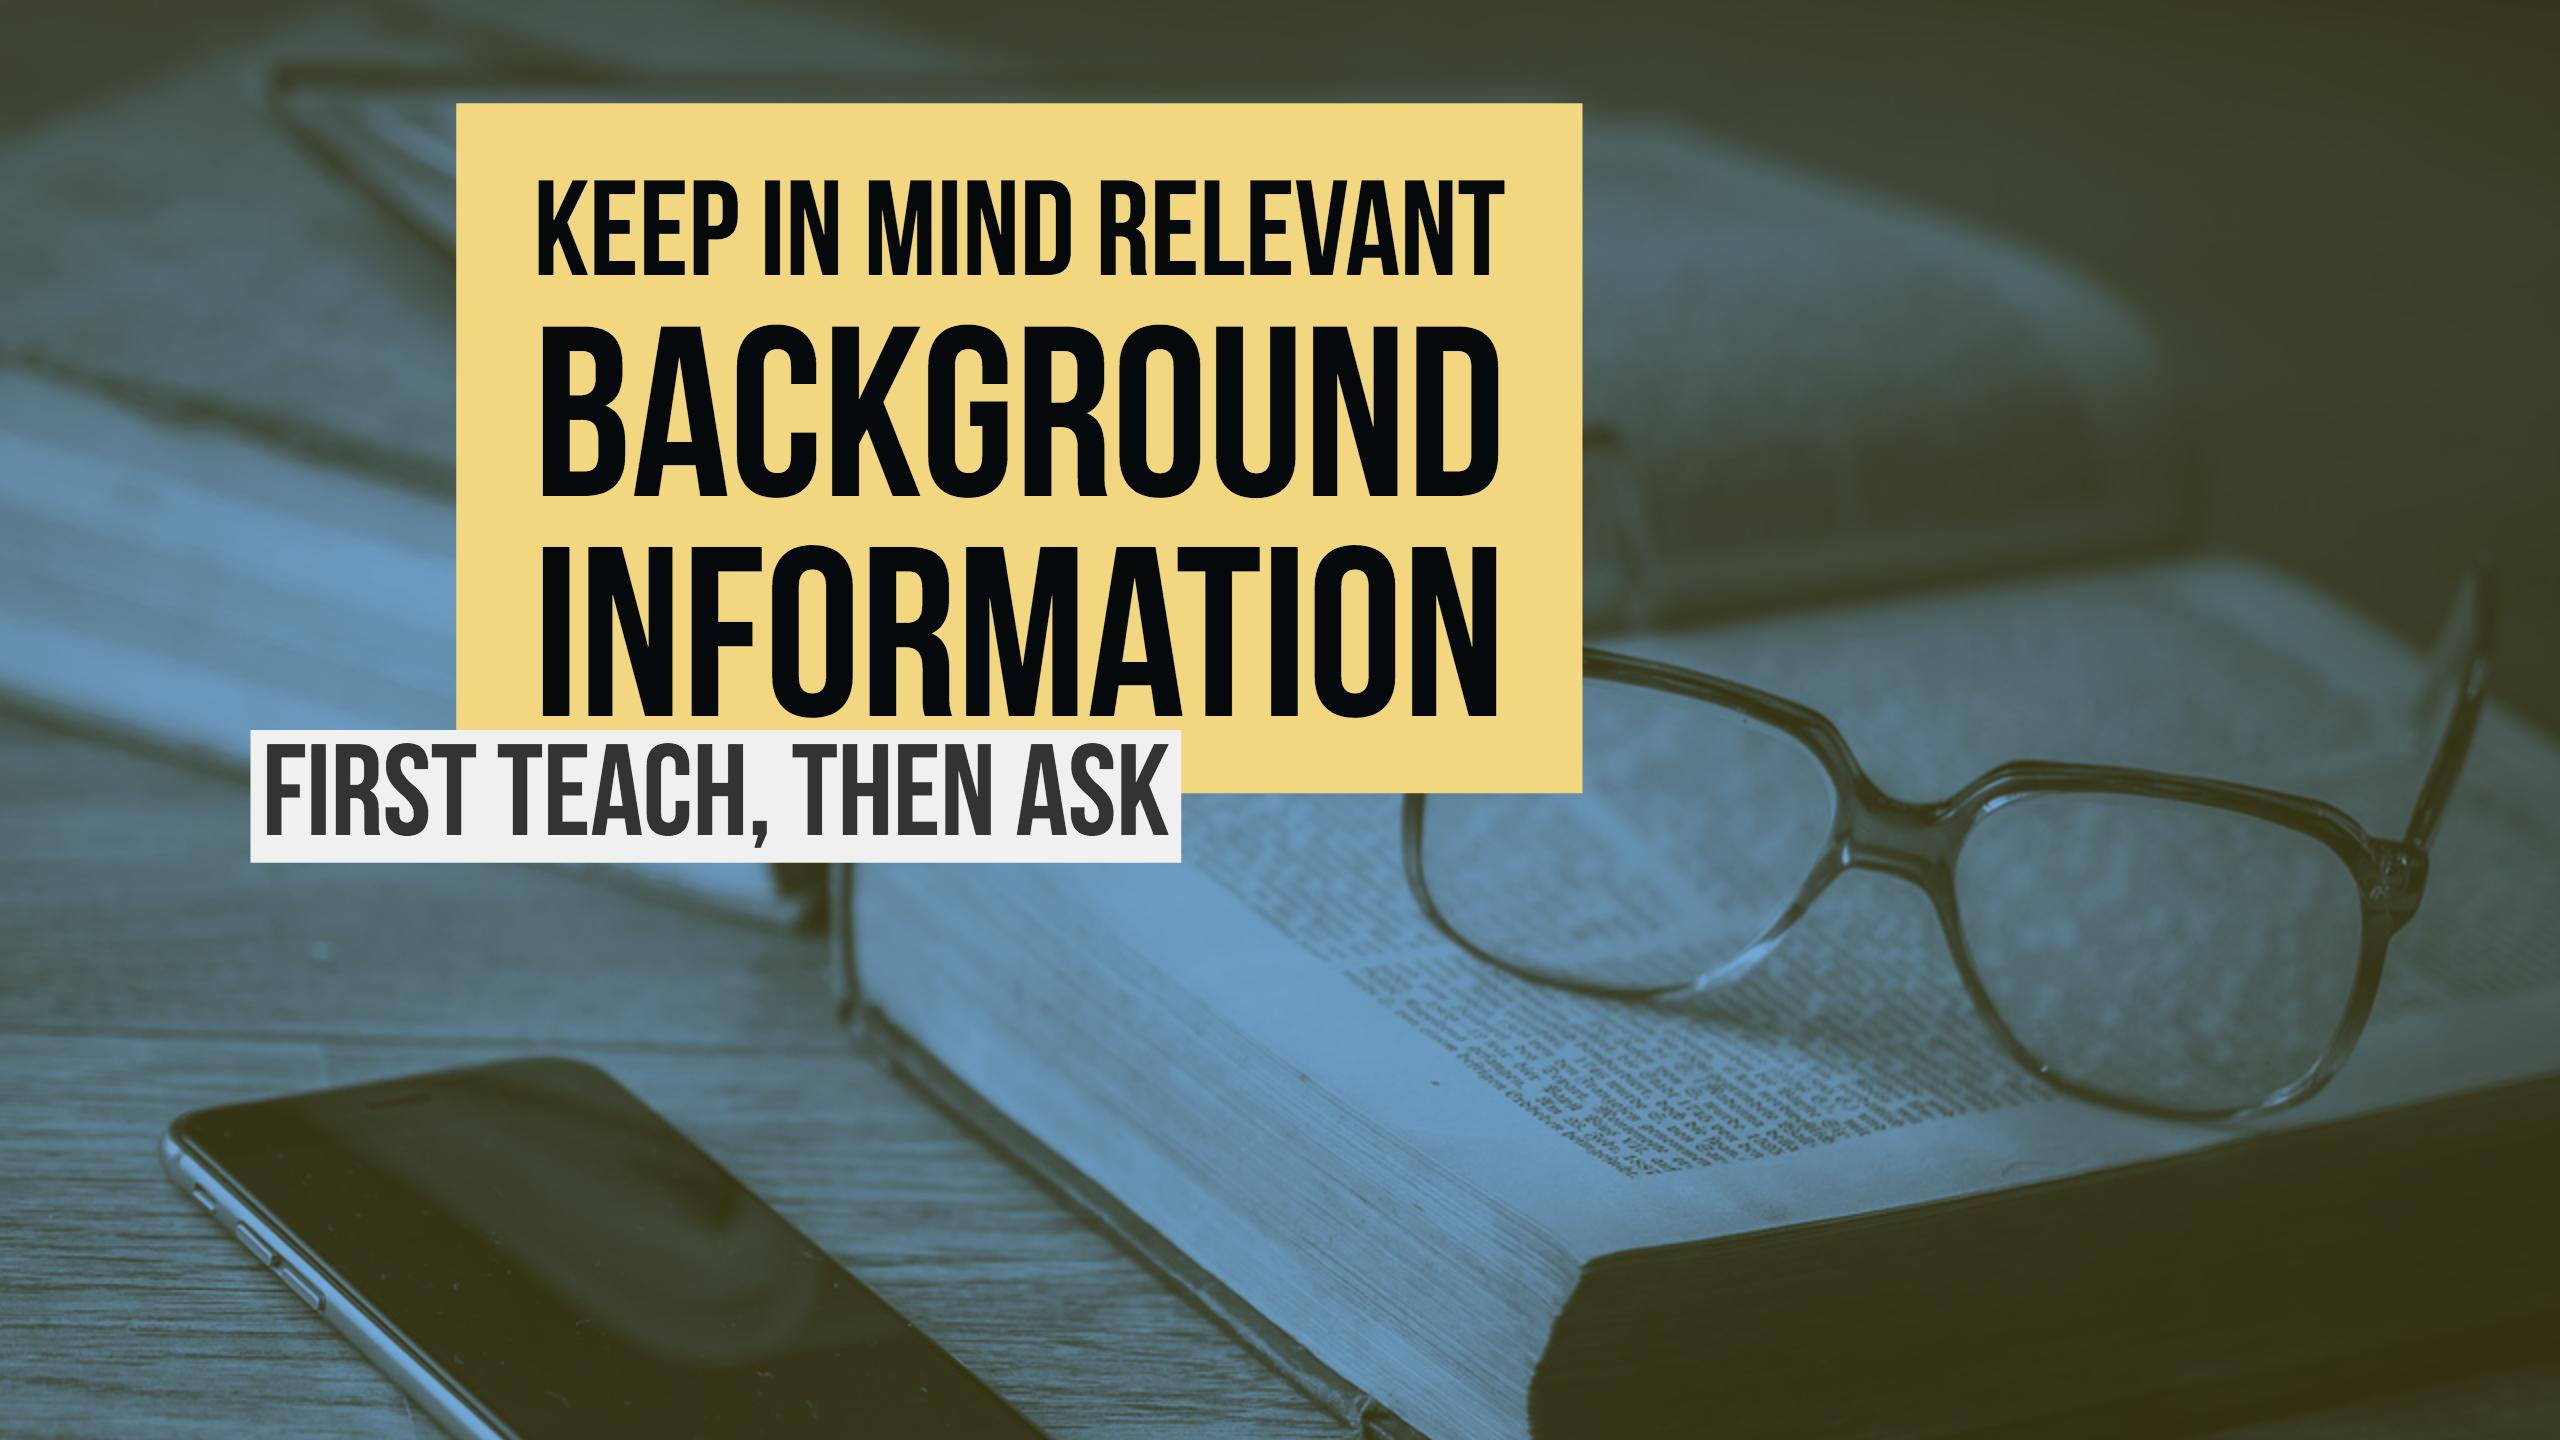 education: keep in mind relevant background information